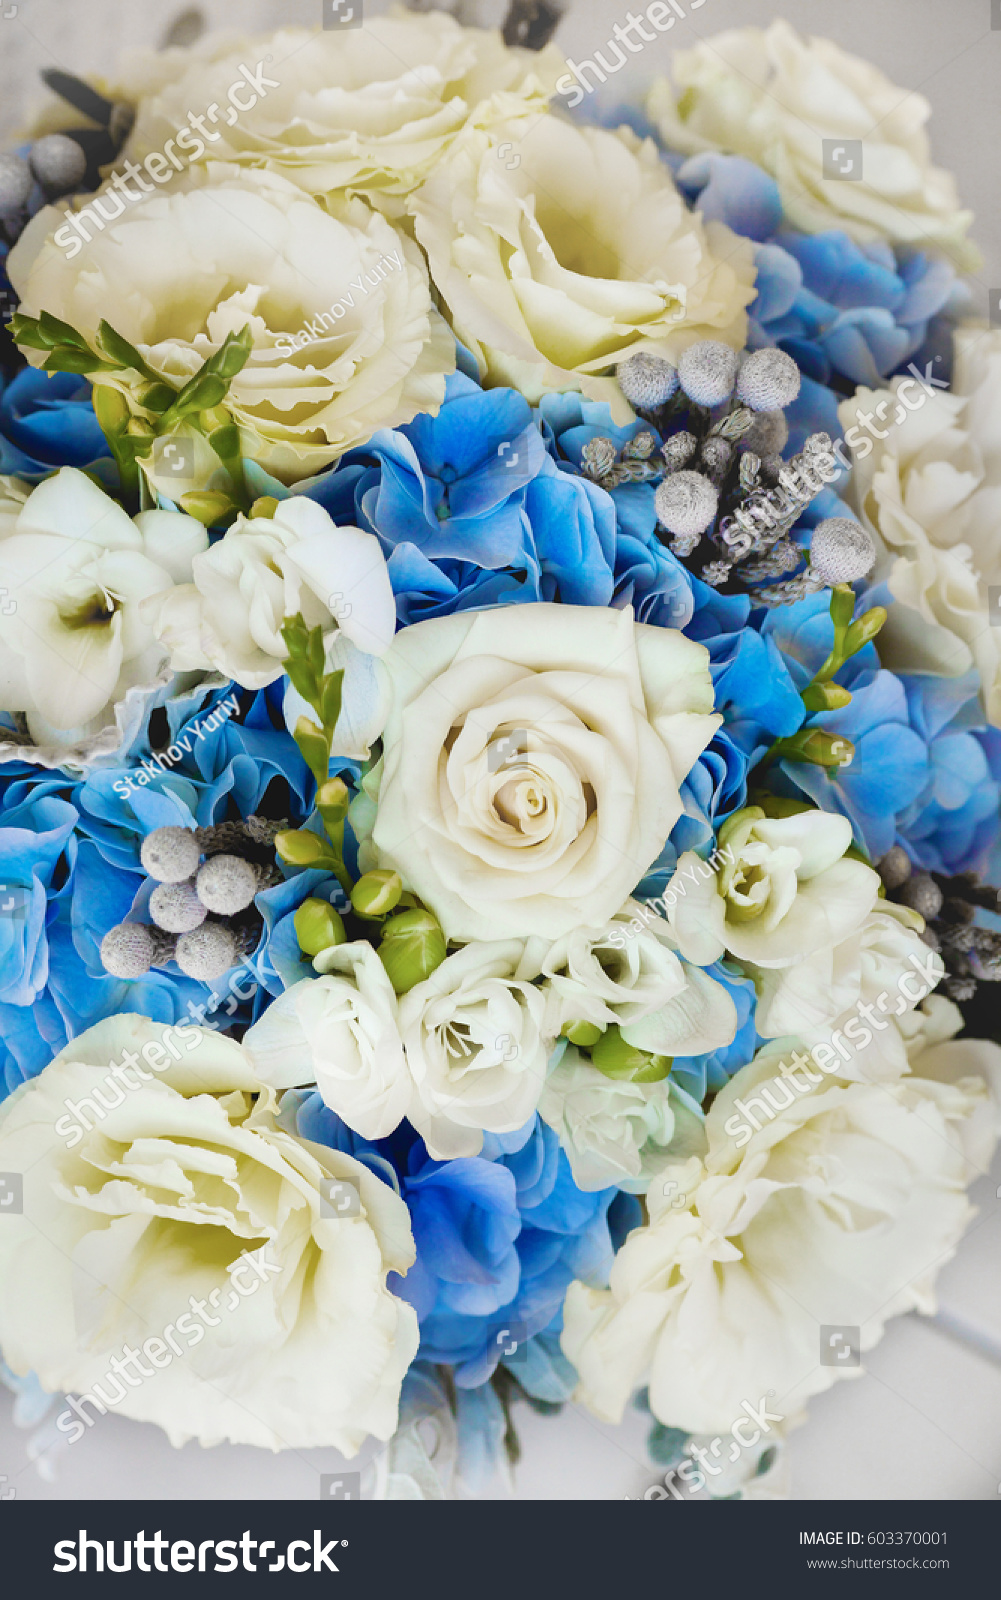 Wedding Bouquet White Blue Roses Other Stock Photo Royalty Free